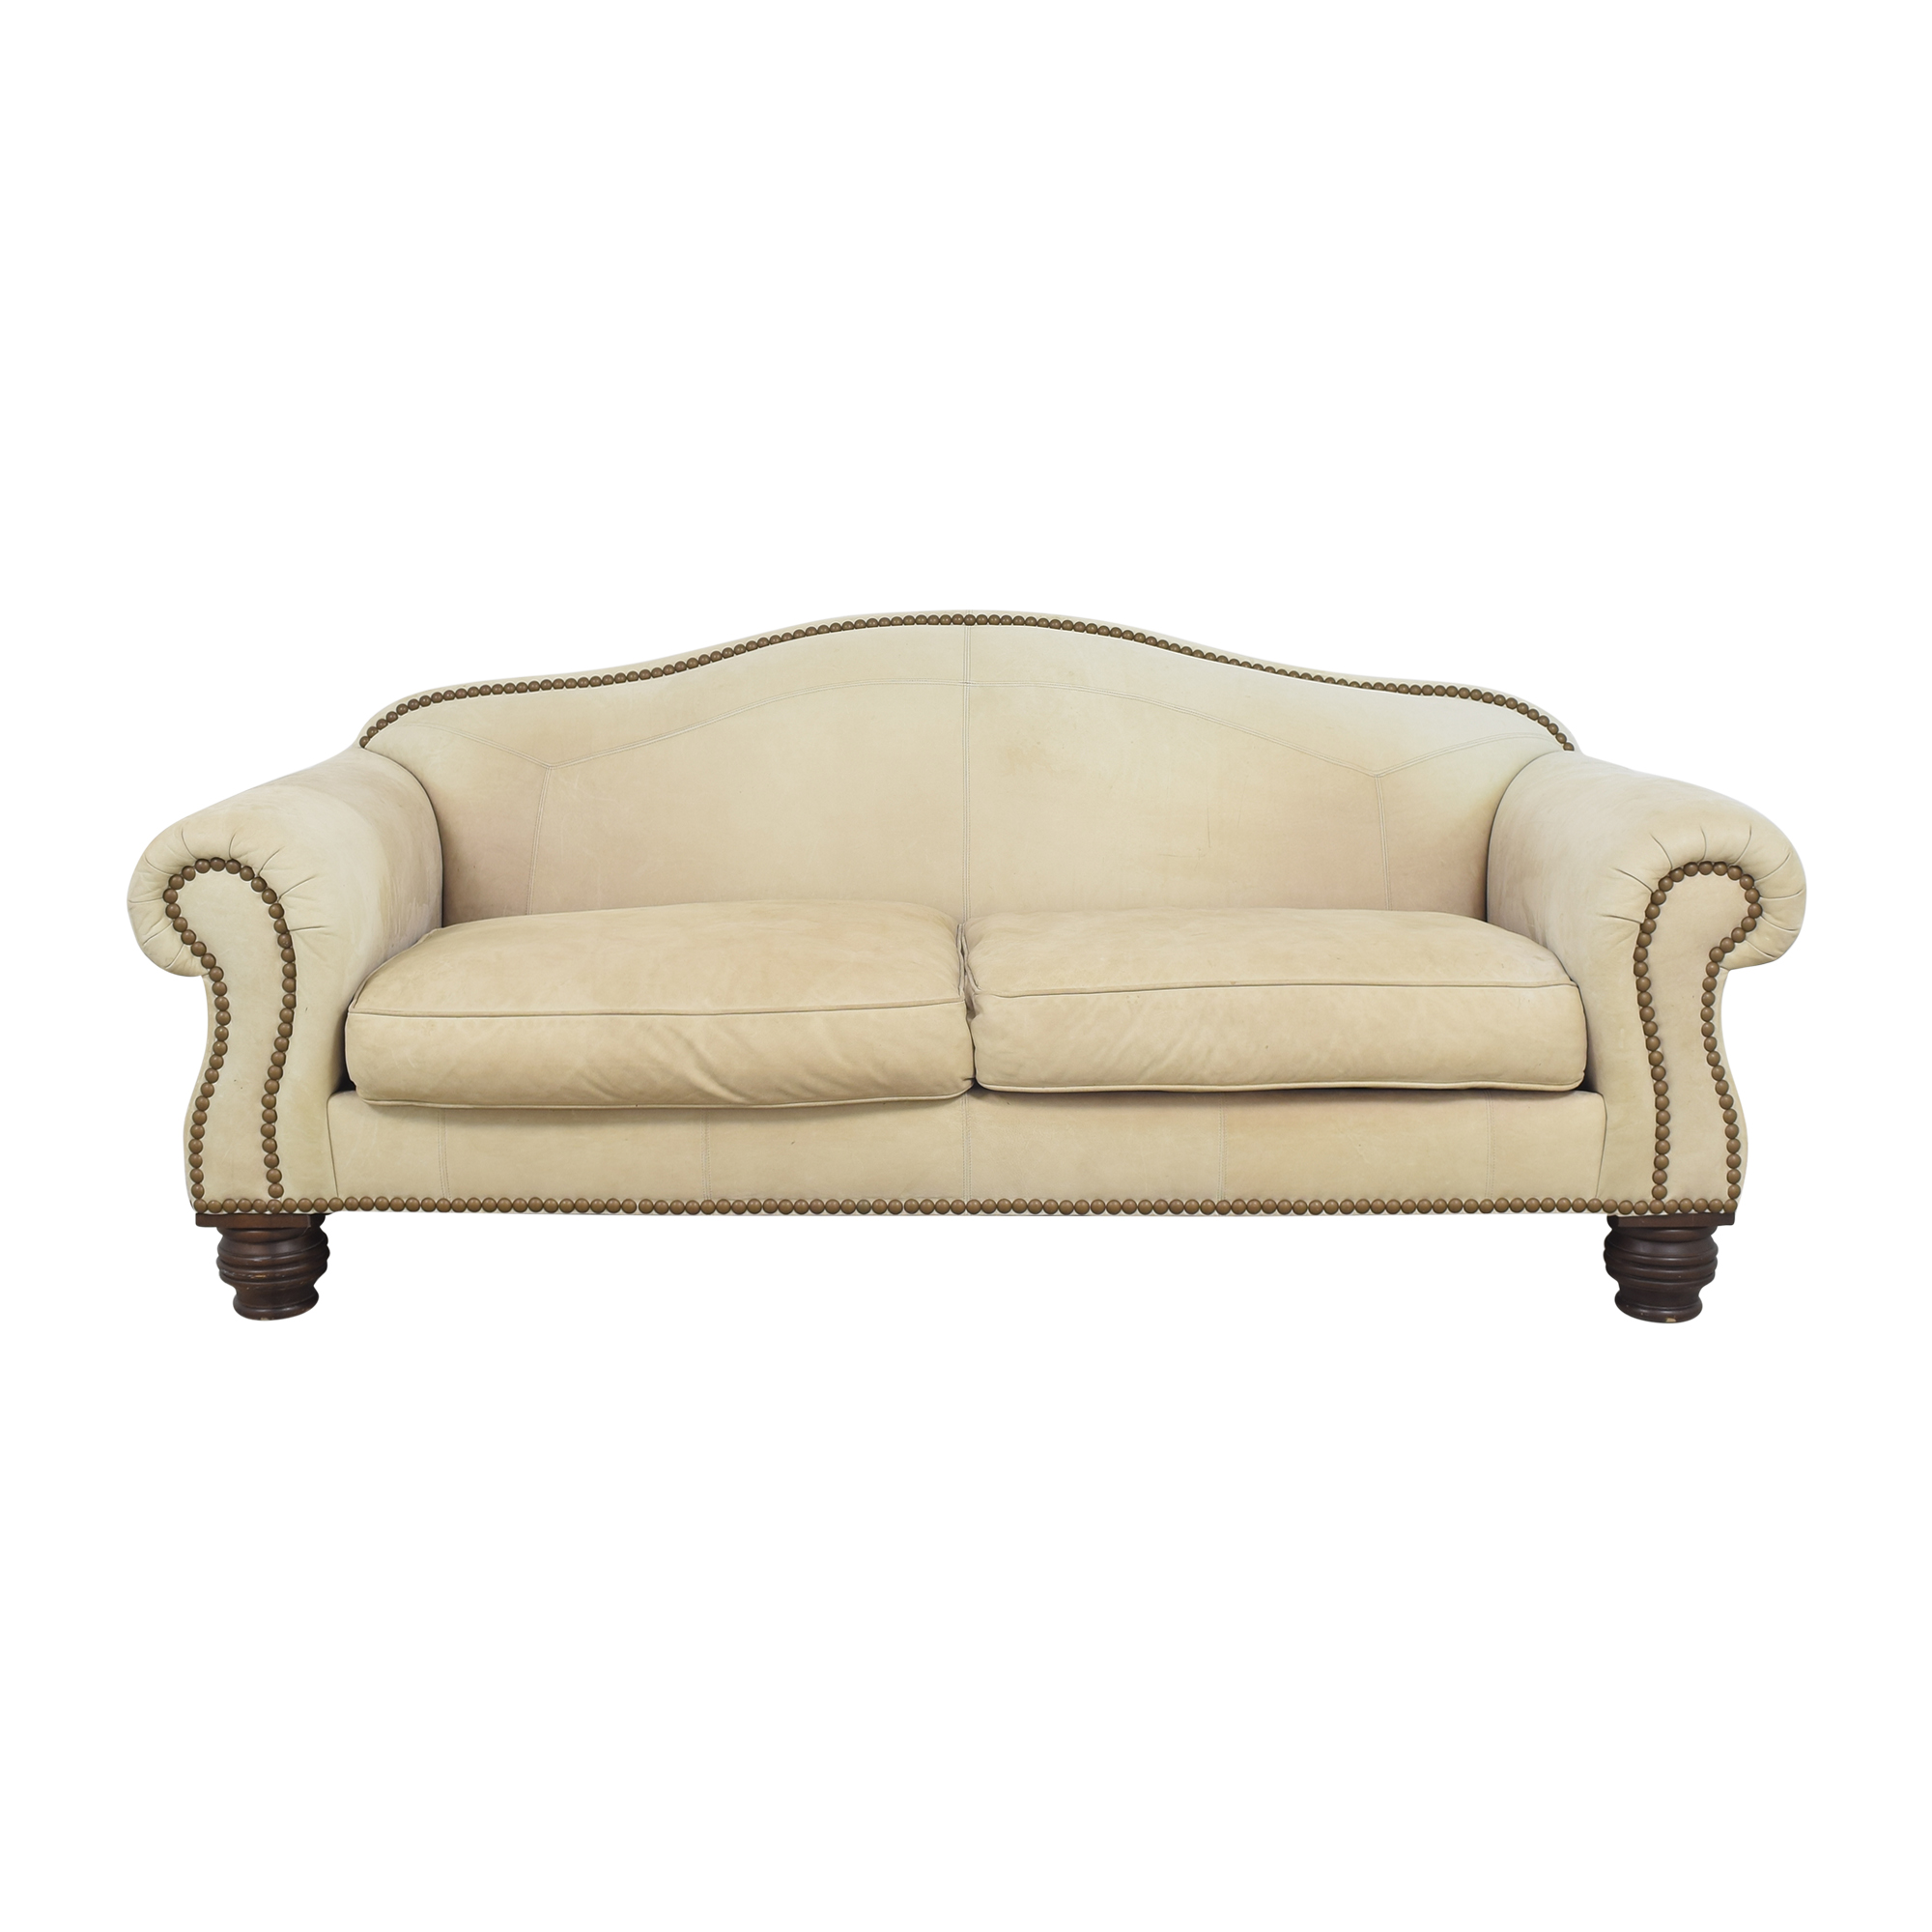 Lillian August Nailhead Camelback Sofa Lillian August